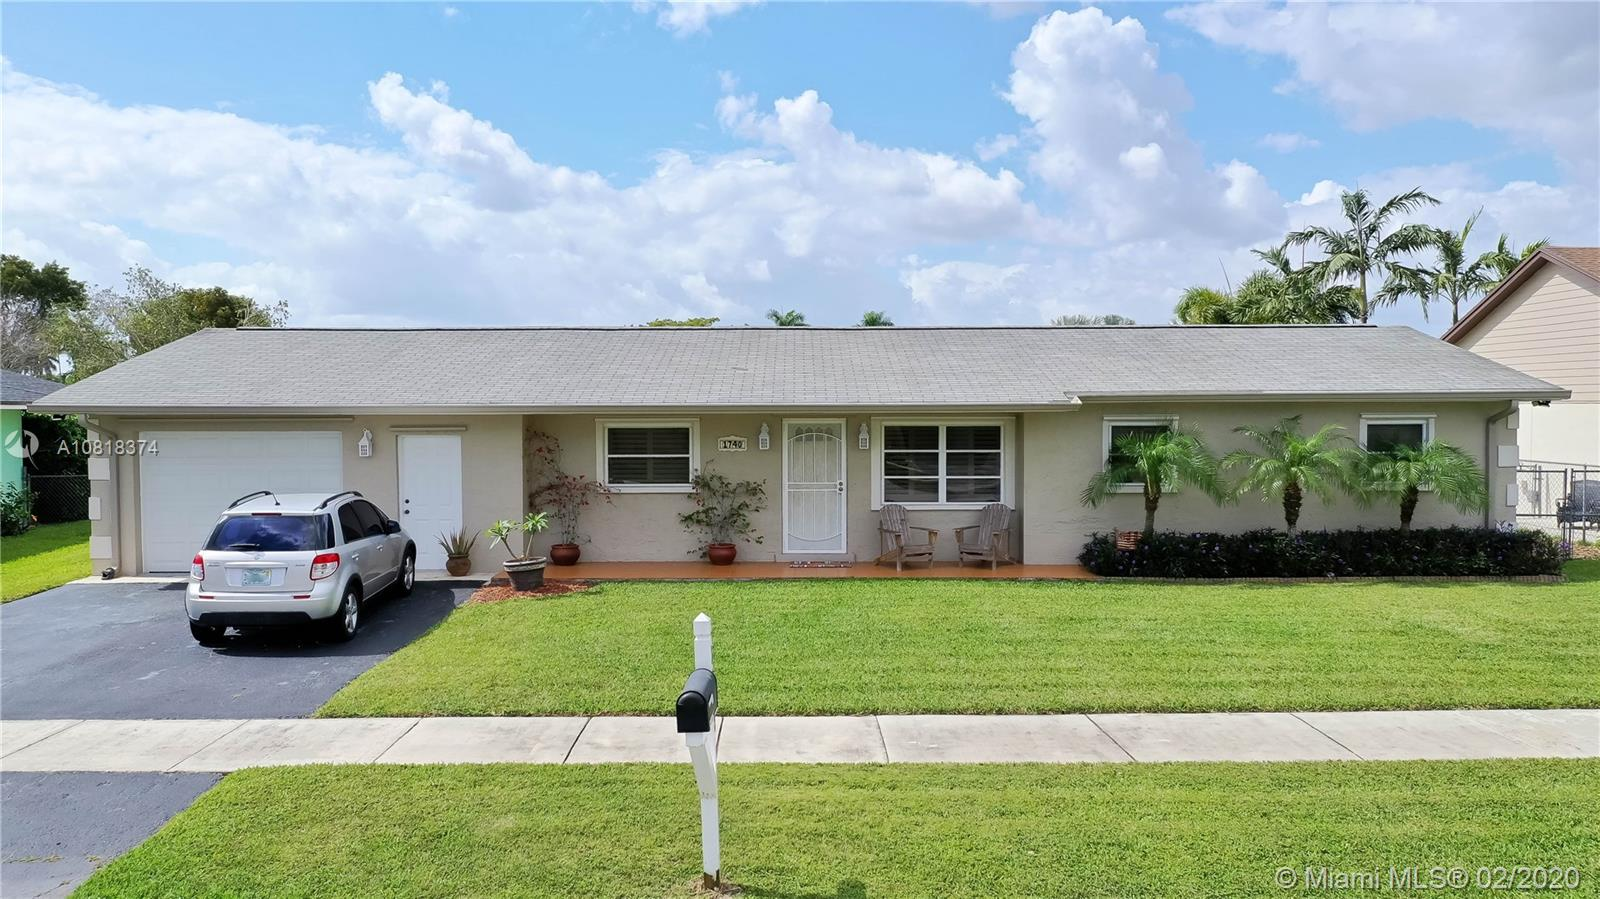 1740 NW 12th Ave, Homestead, FL 33030 - Homestead, FL real estate listing